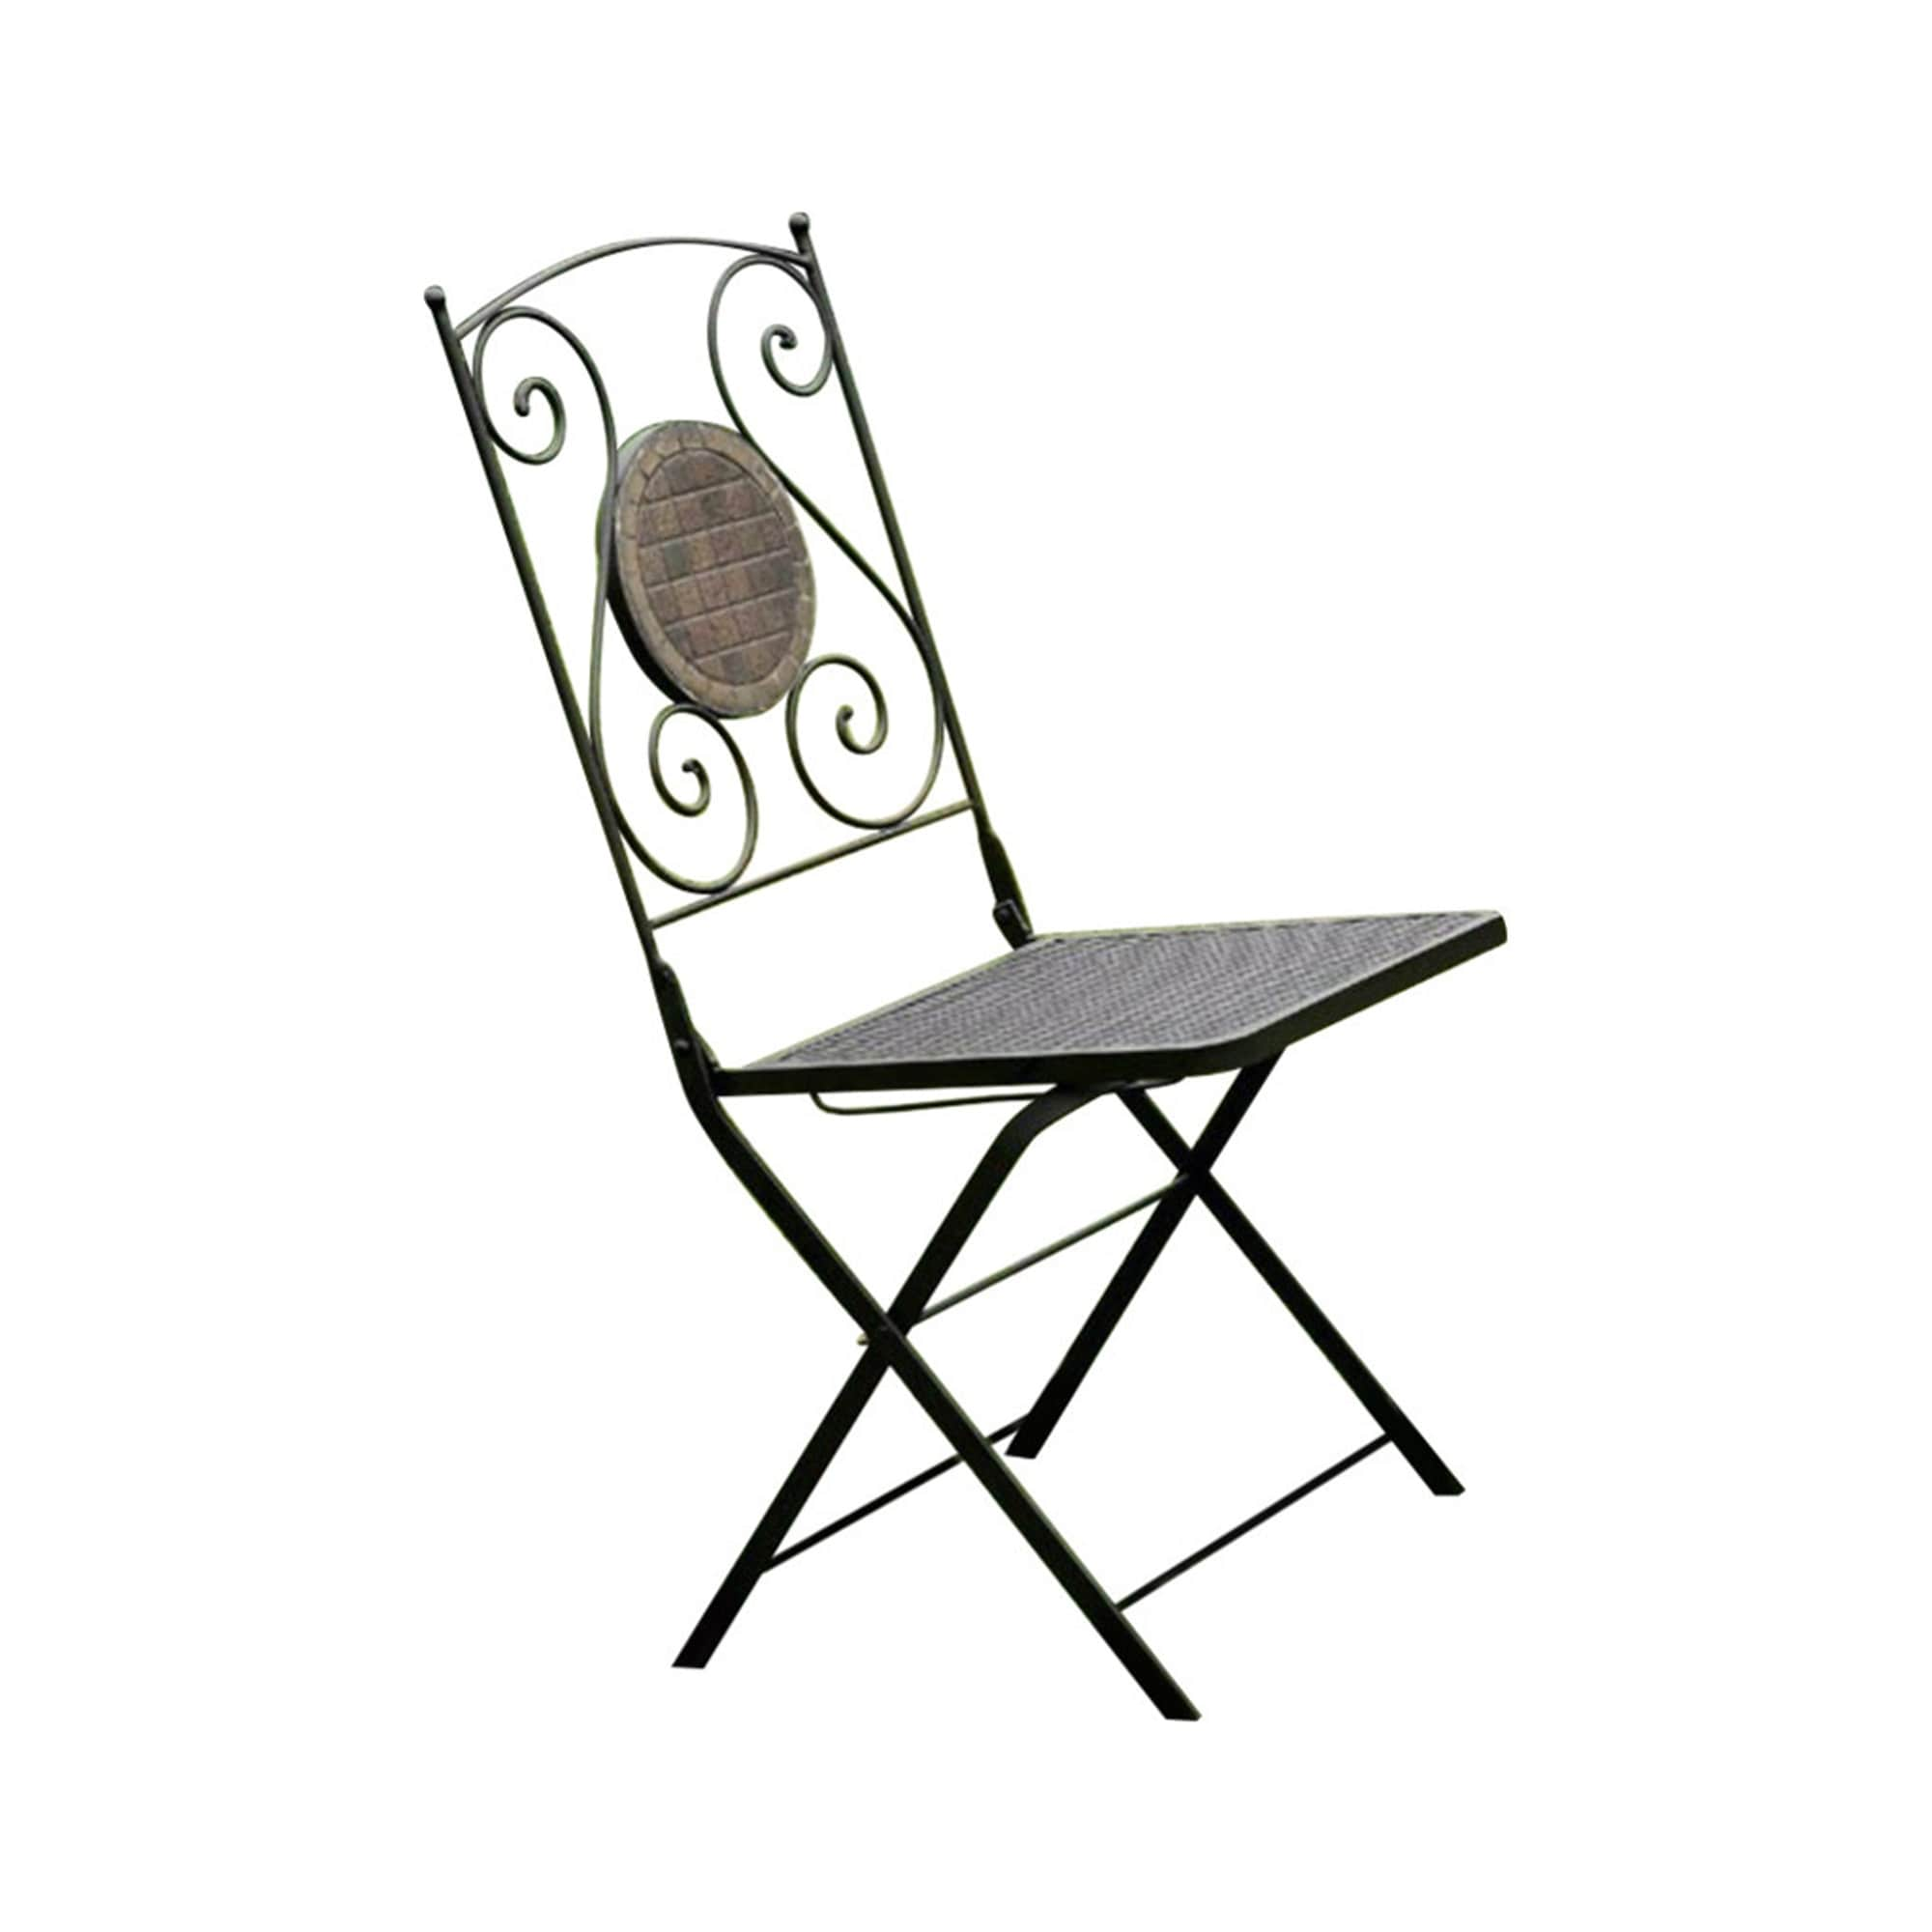 2 Piece Minimalistic Folding Metal Chair With Decoration On Back Black Overstock 29450440